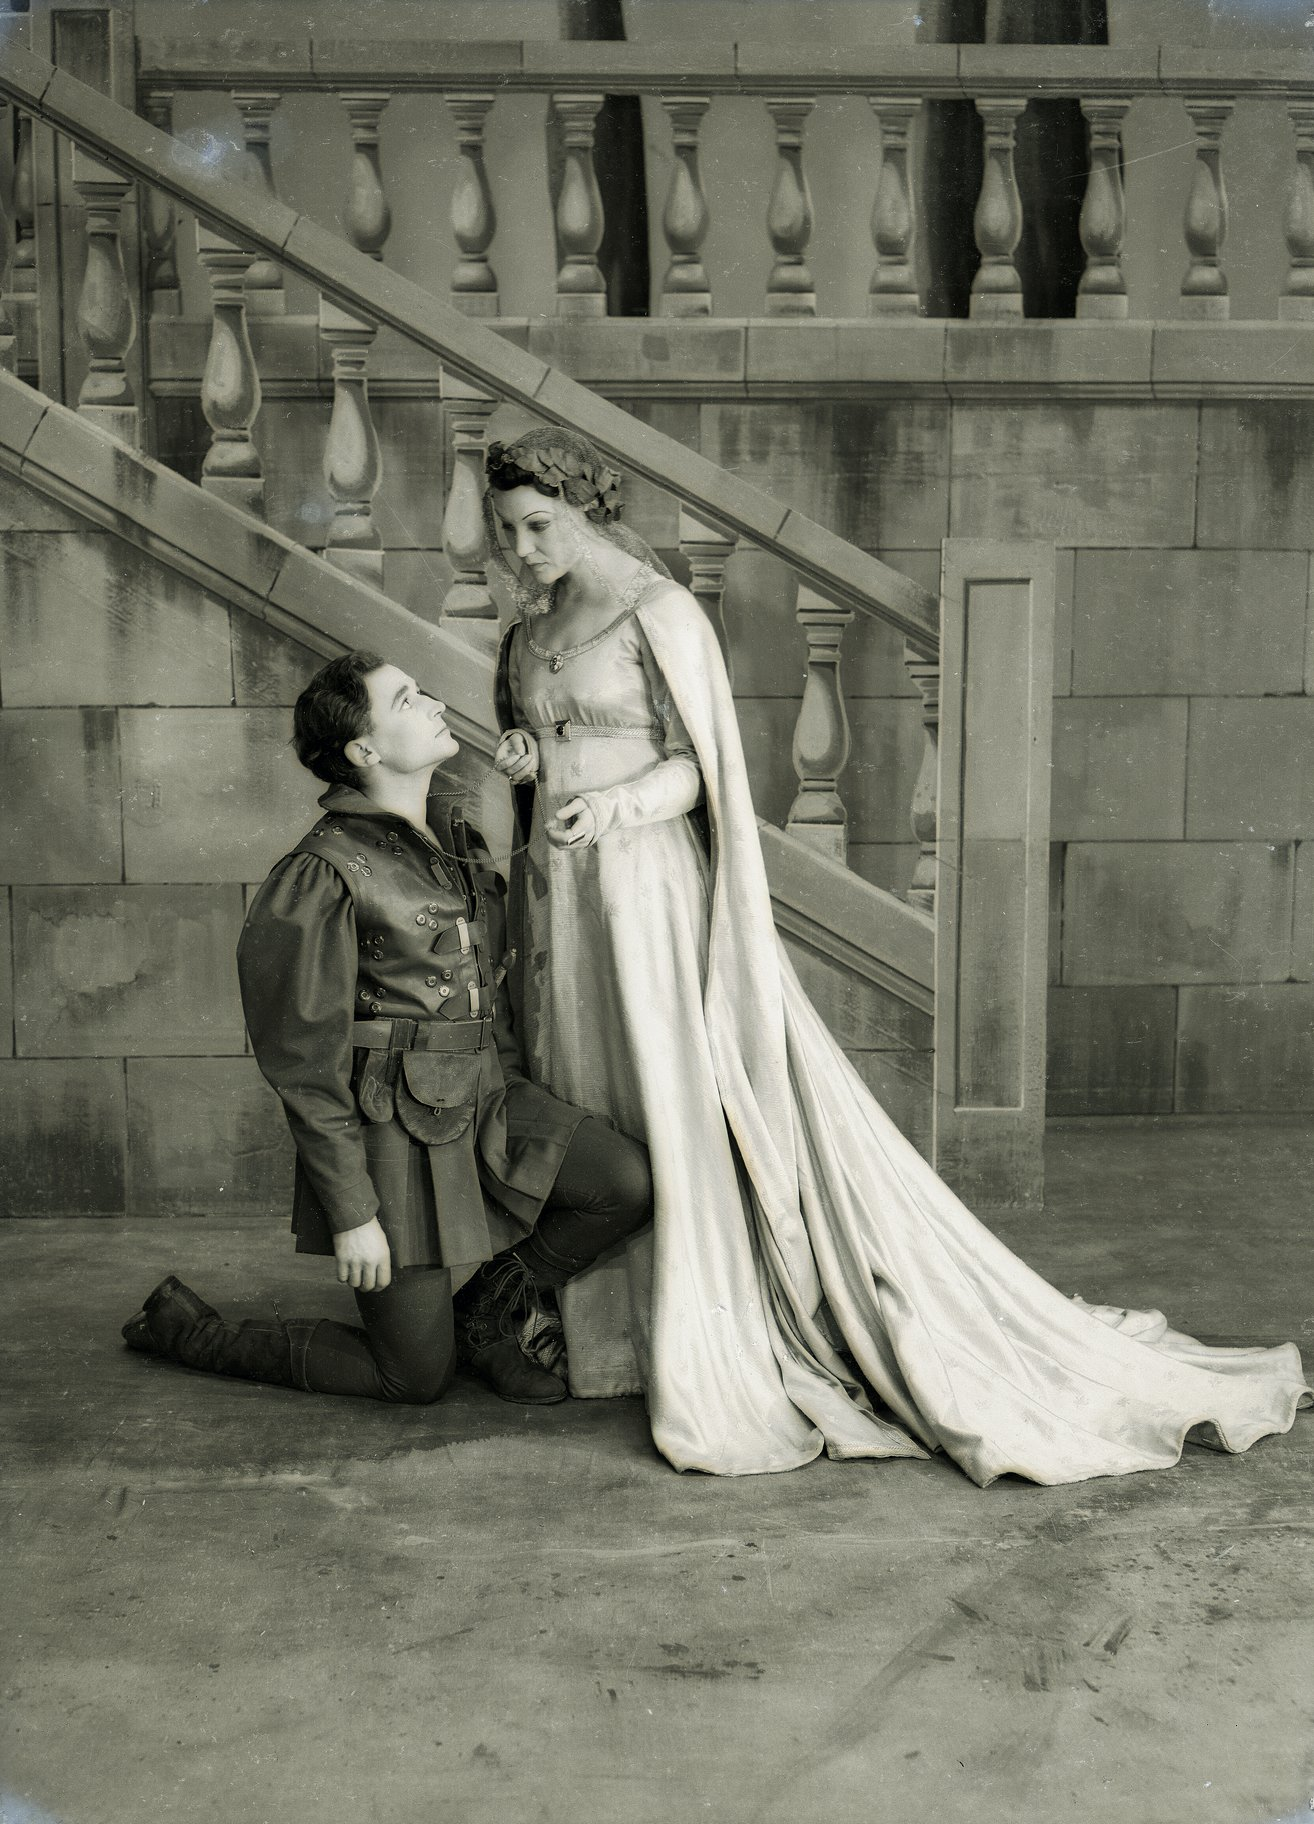 A man kneels before a woman in white.